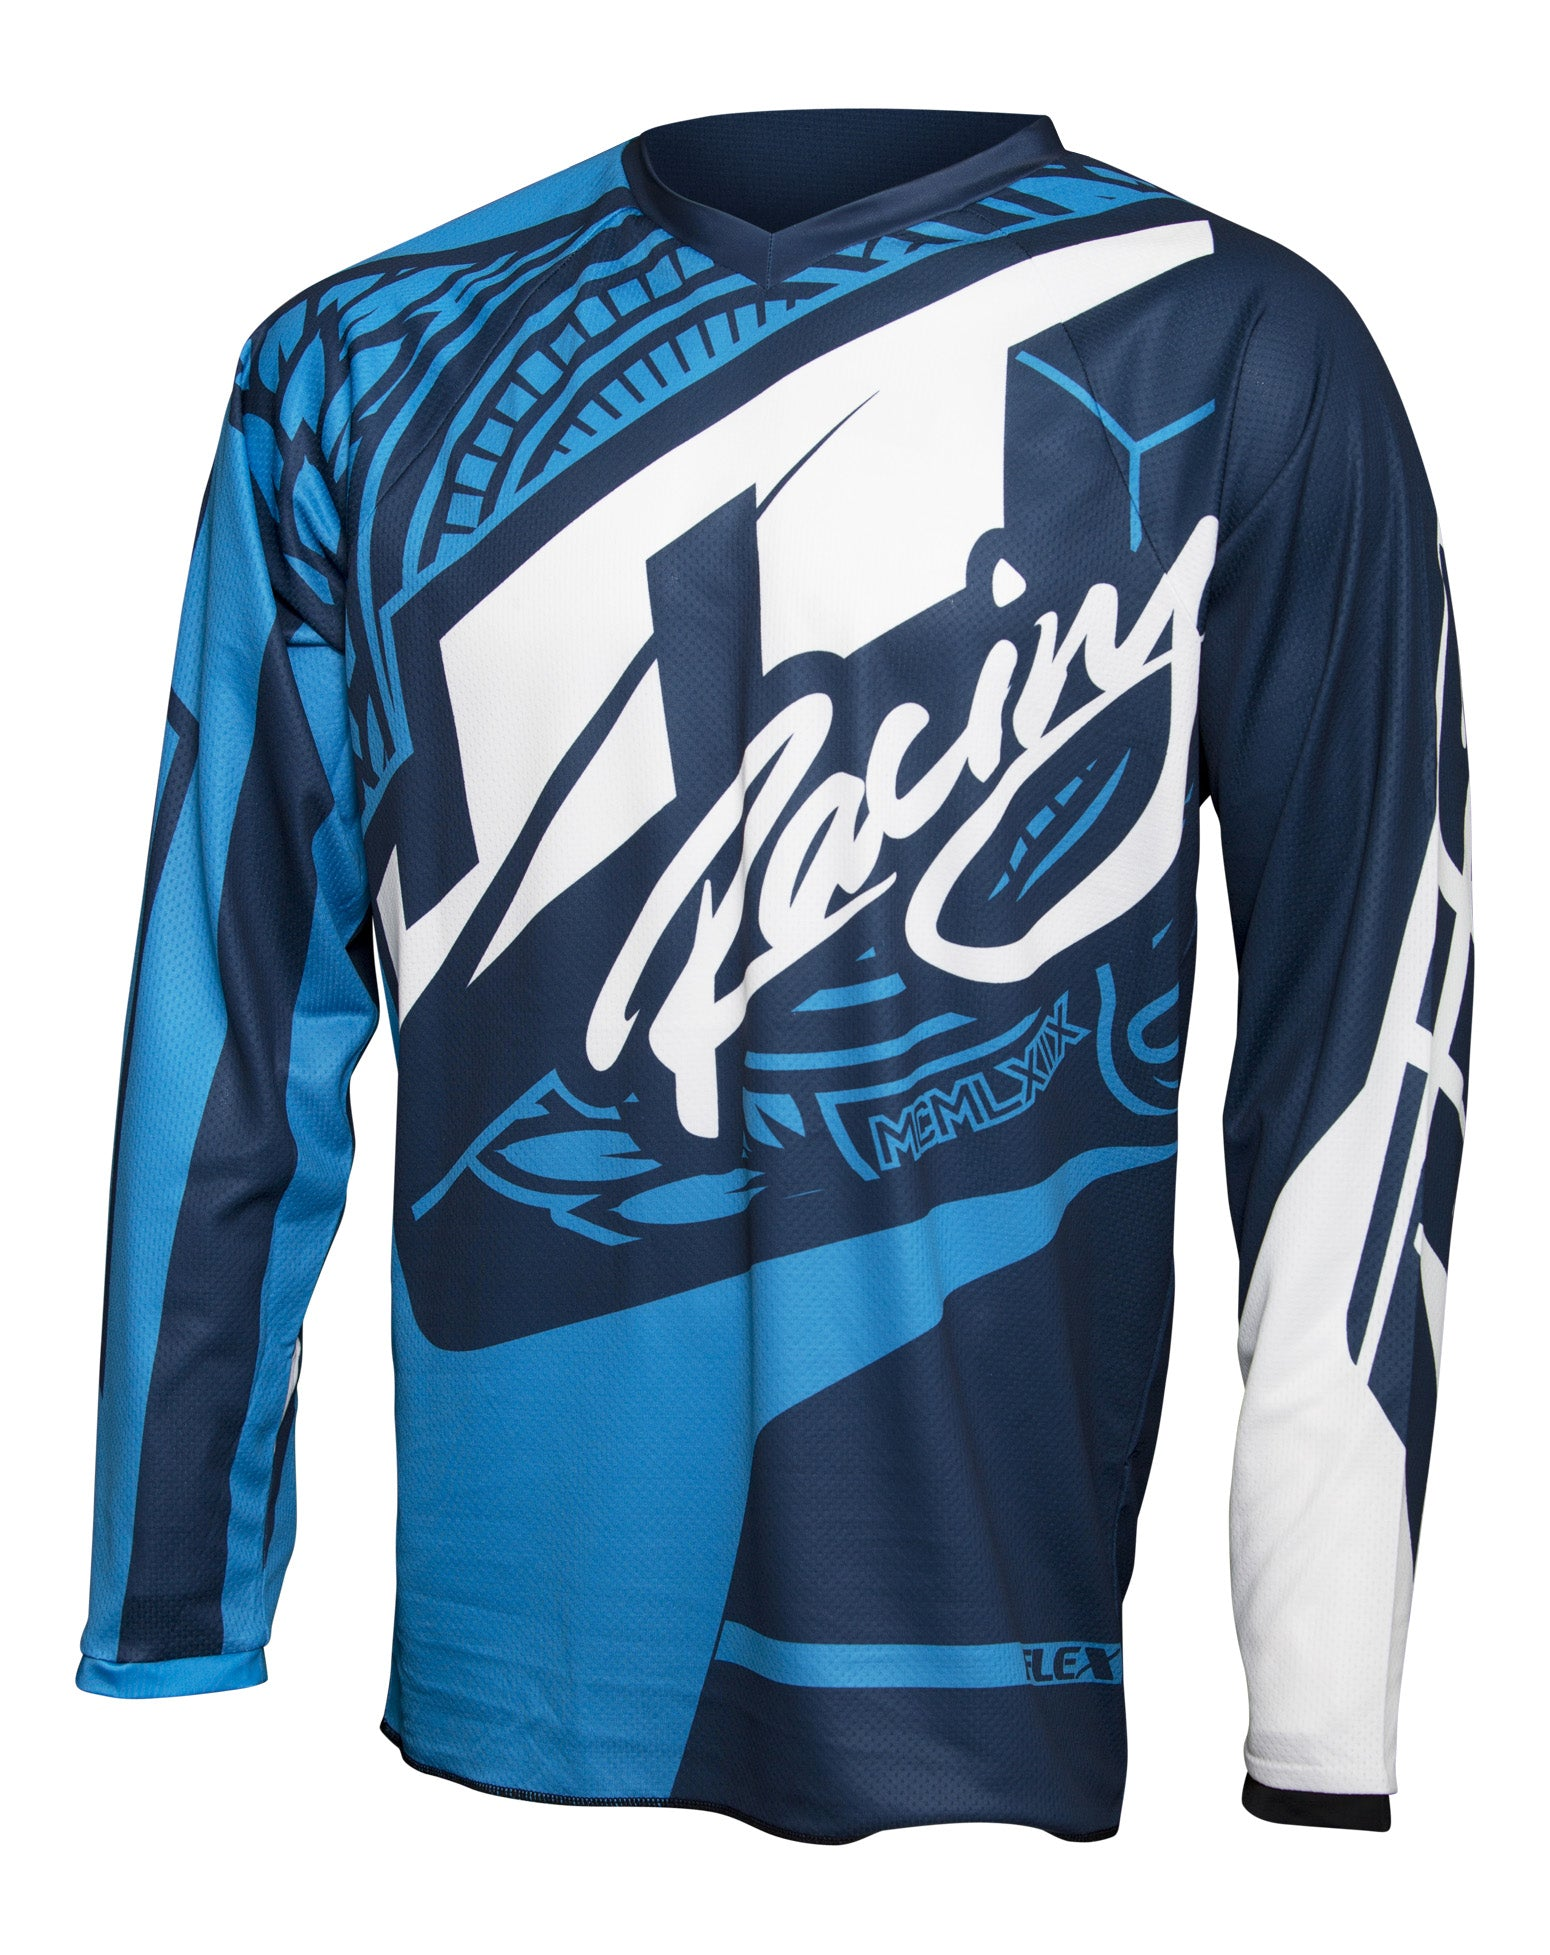 JT RACING USA-2017 Flex-Victory Jersey, Navy/Cyan